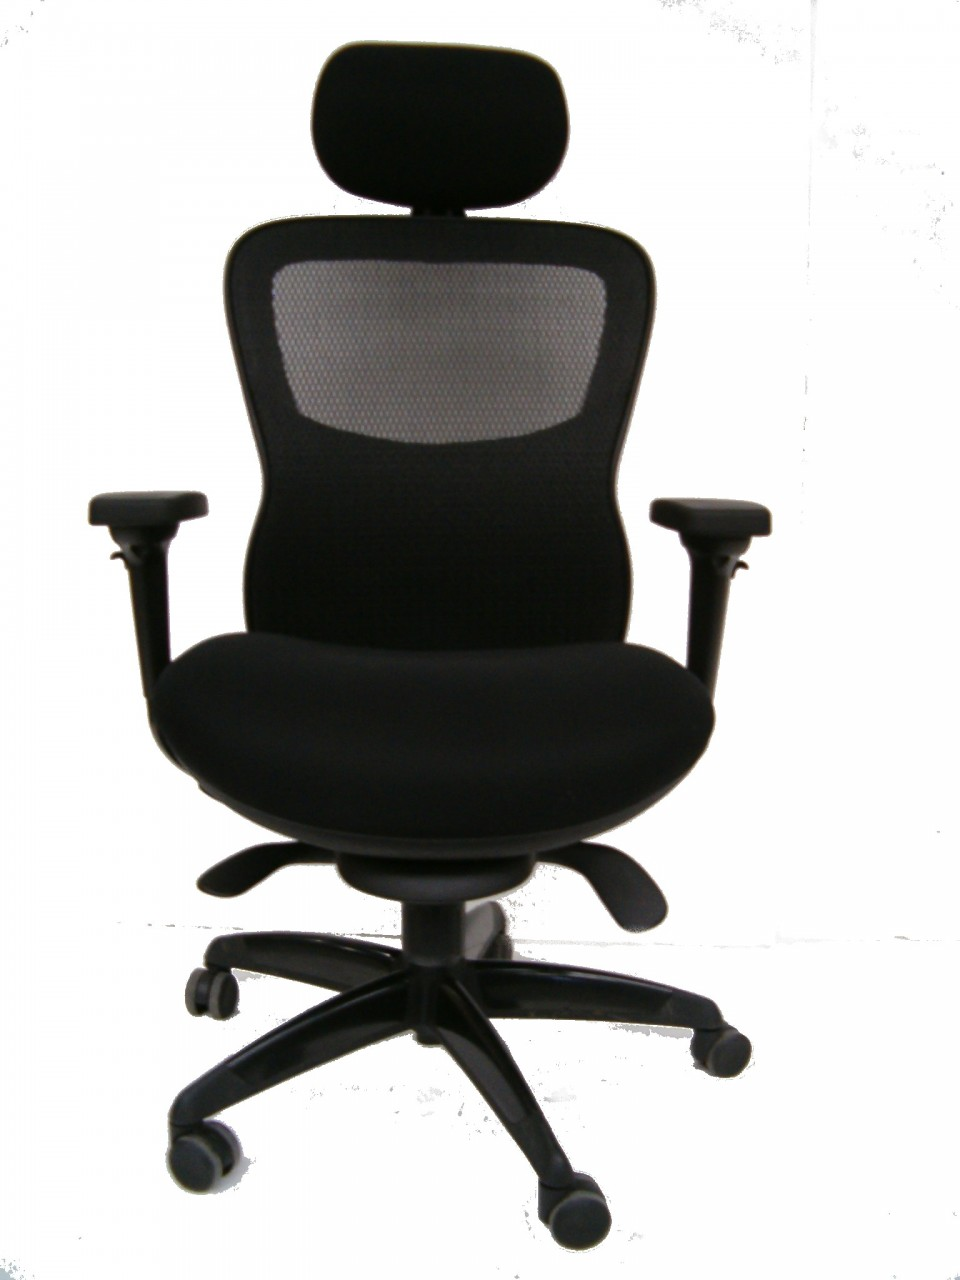 fauteuil de bureau ergonomique athos achat si ges de. Black Bedroom Furniture Sets. Home Design Ideas